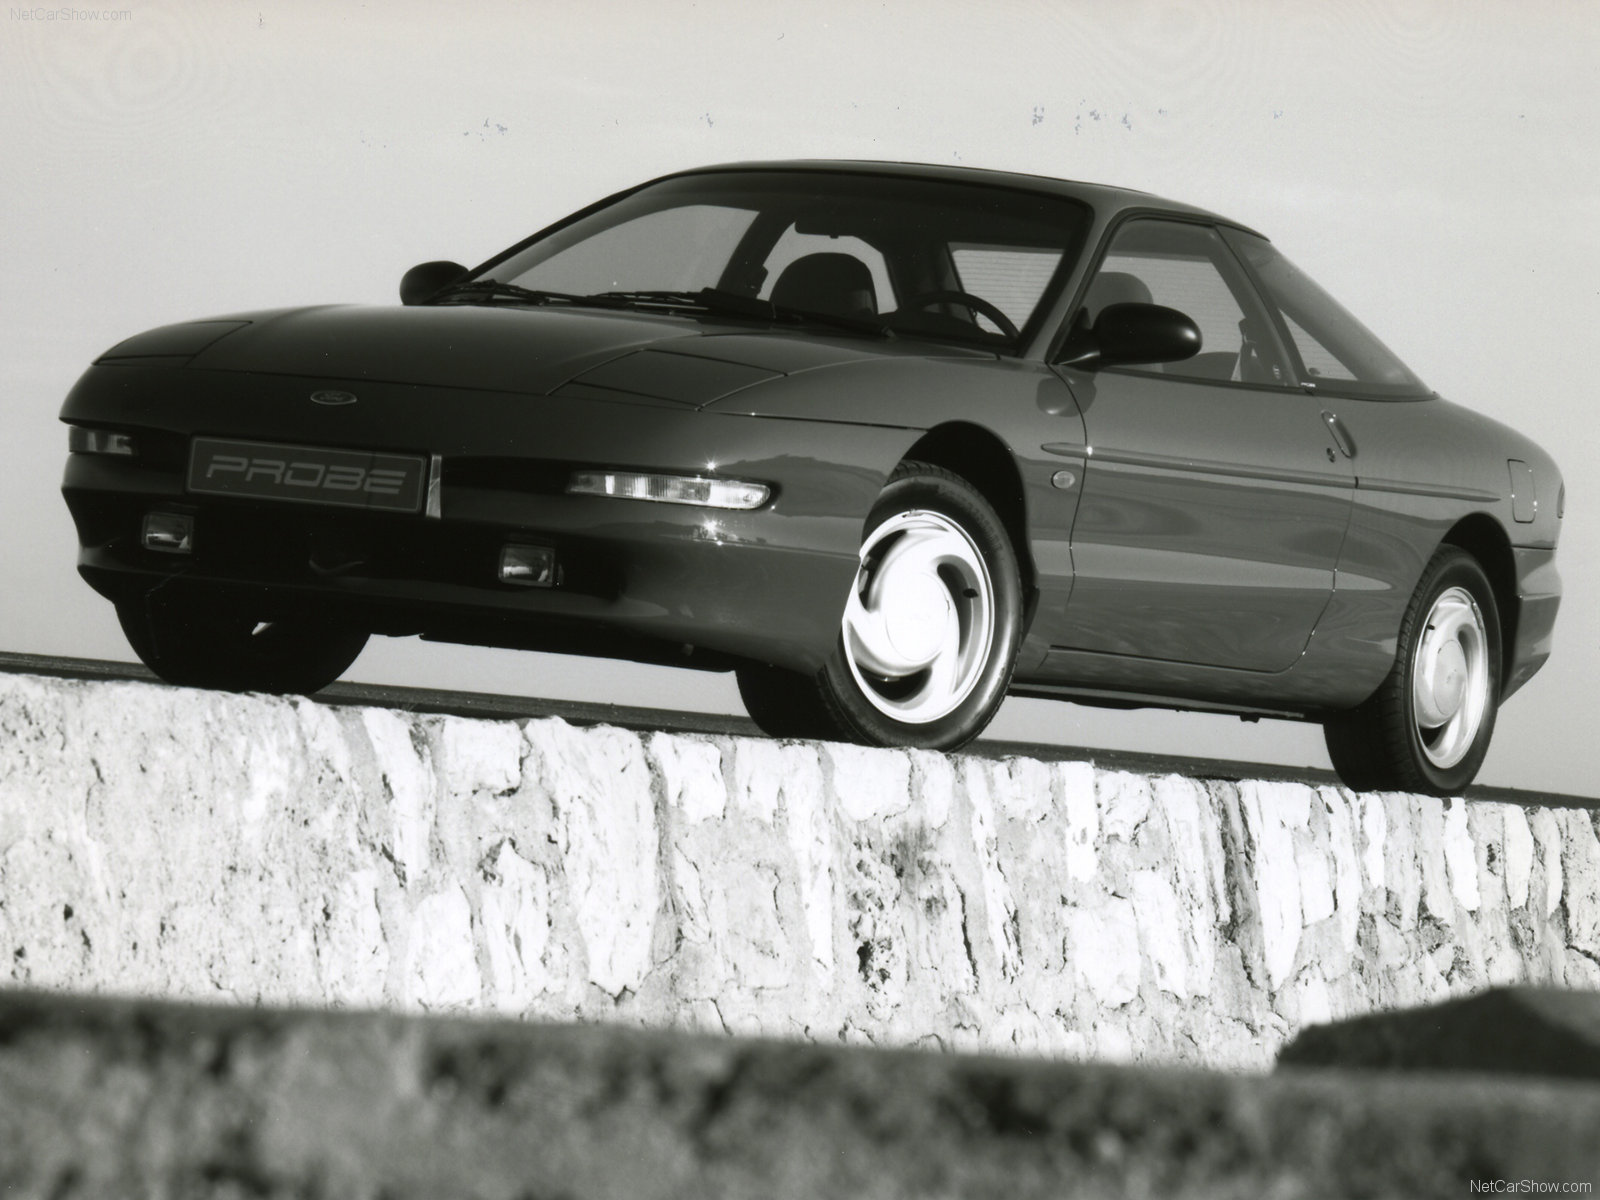 Ford Probe photo 70220